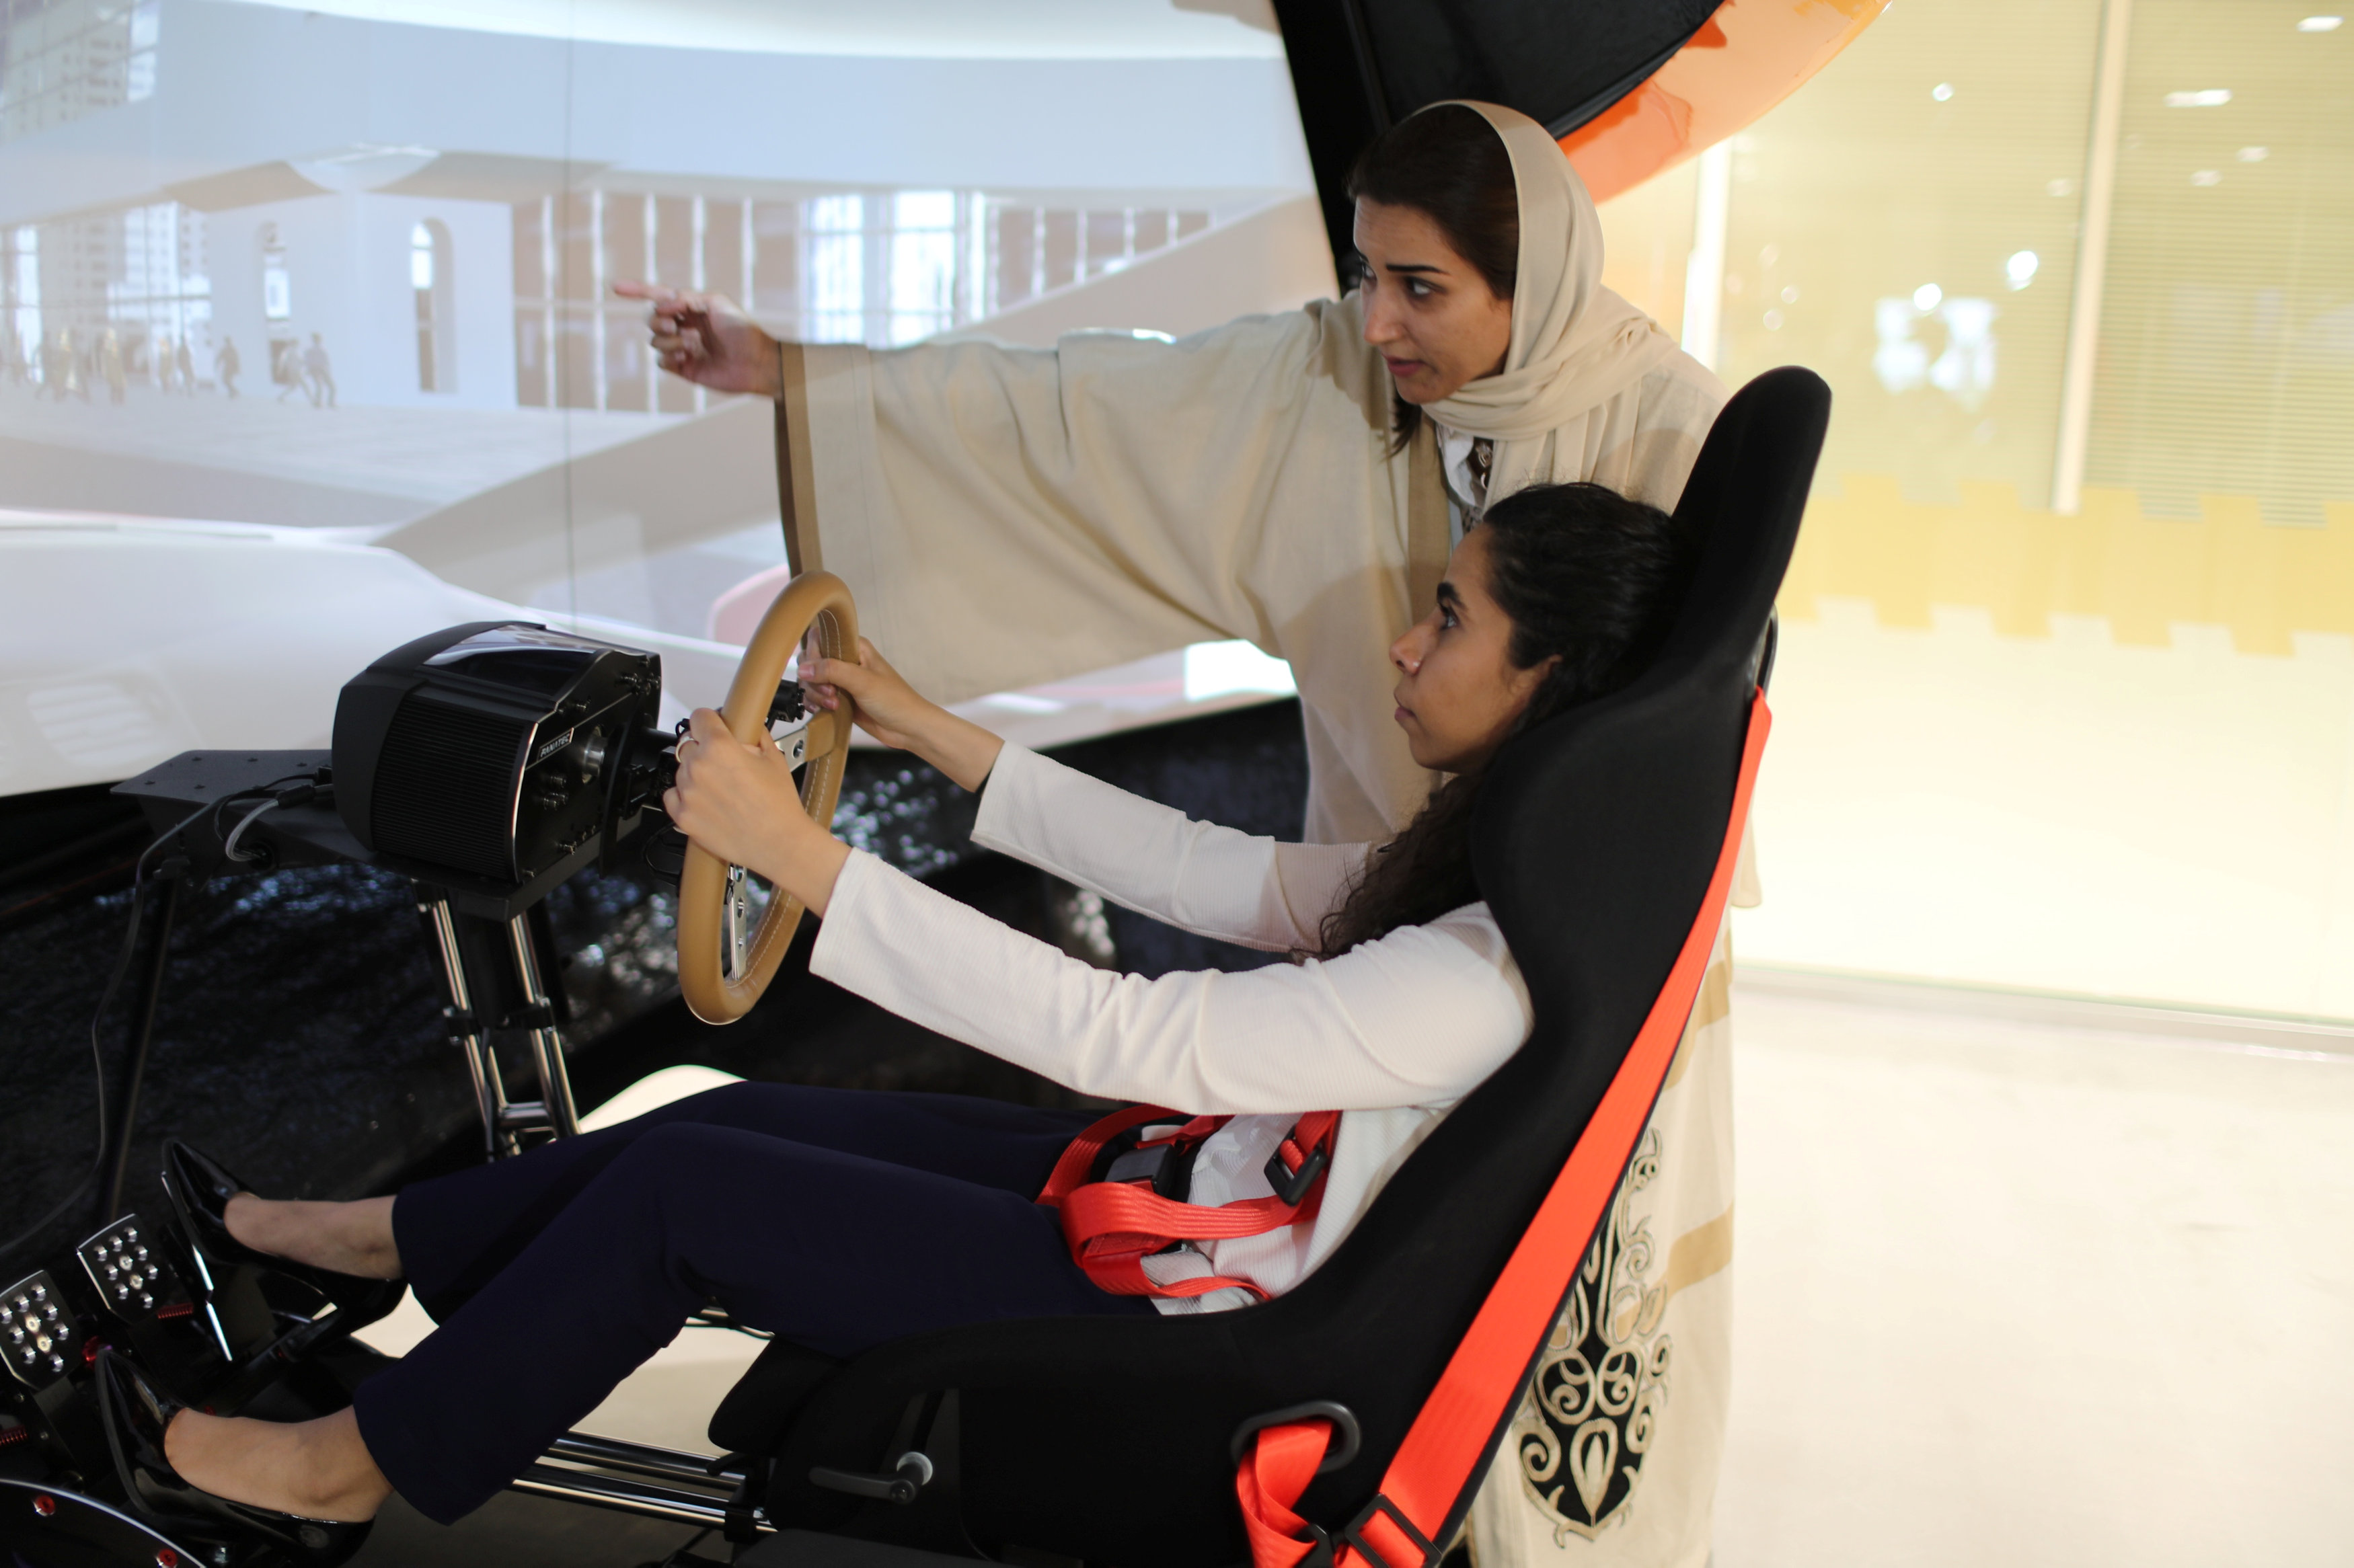 Women in Saudi Arabia exercise their right to drive - Middle East